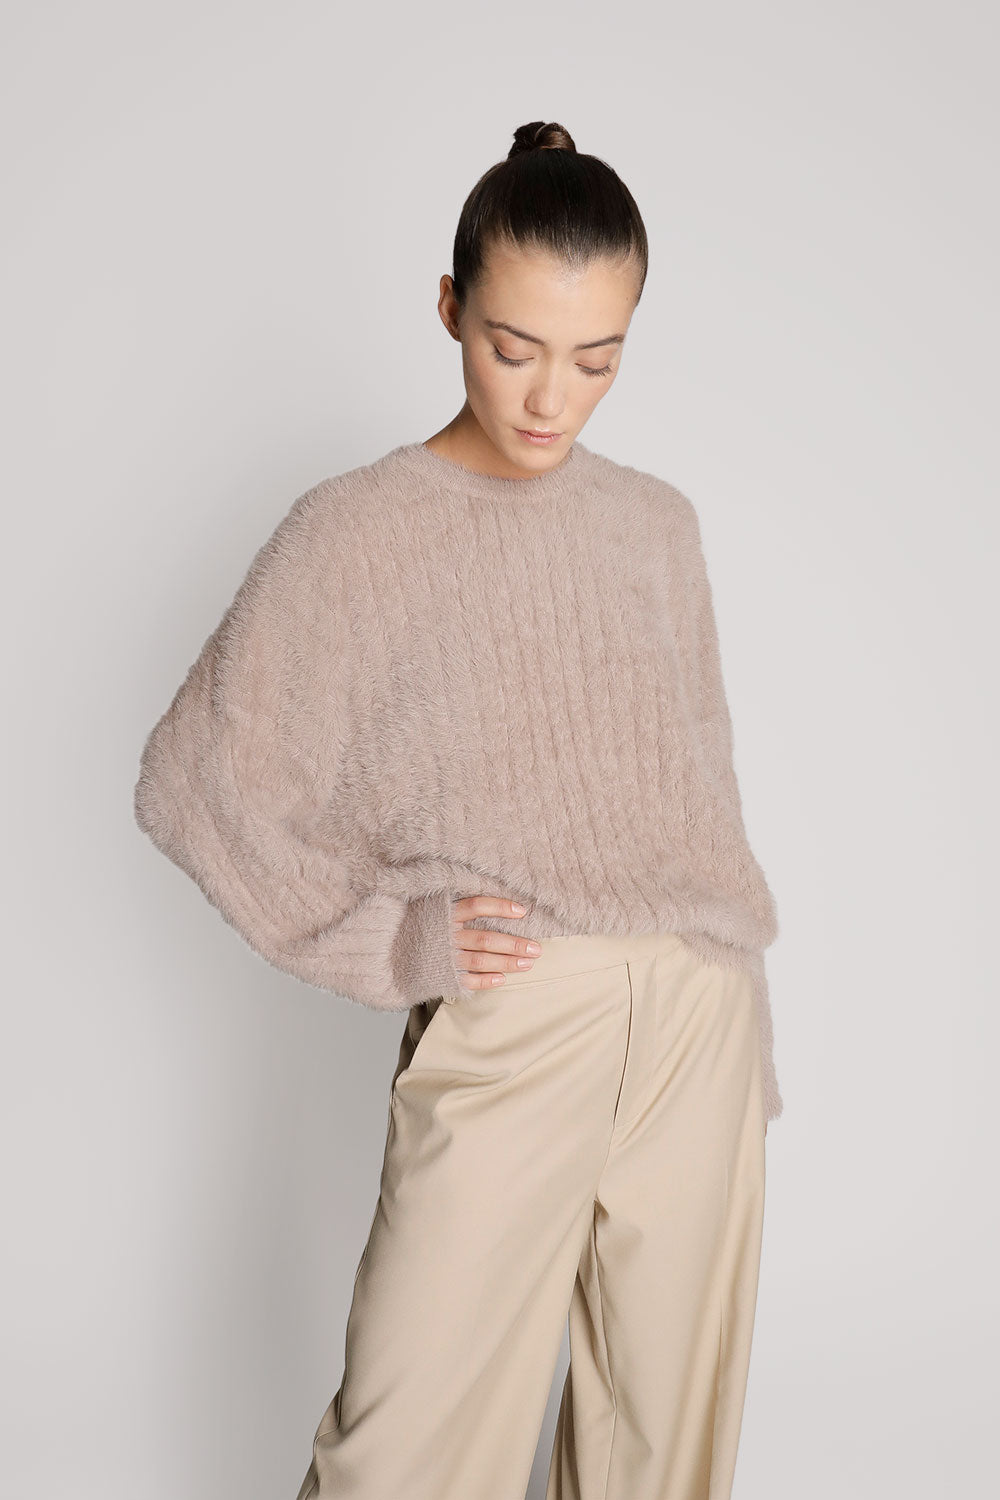 Furry Oversized Crop Sweater